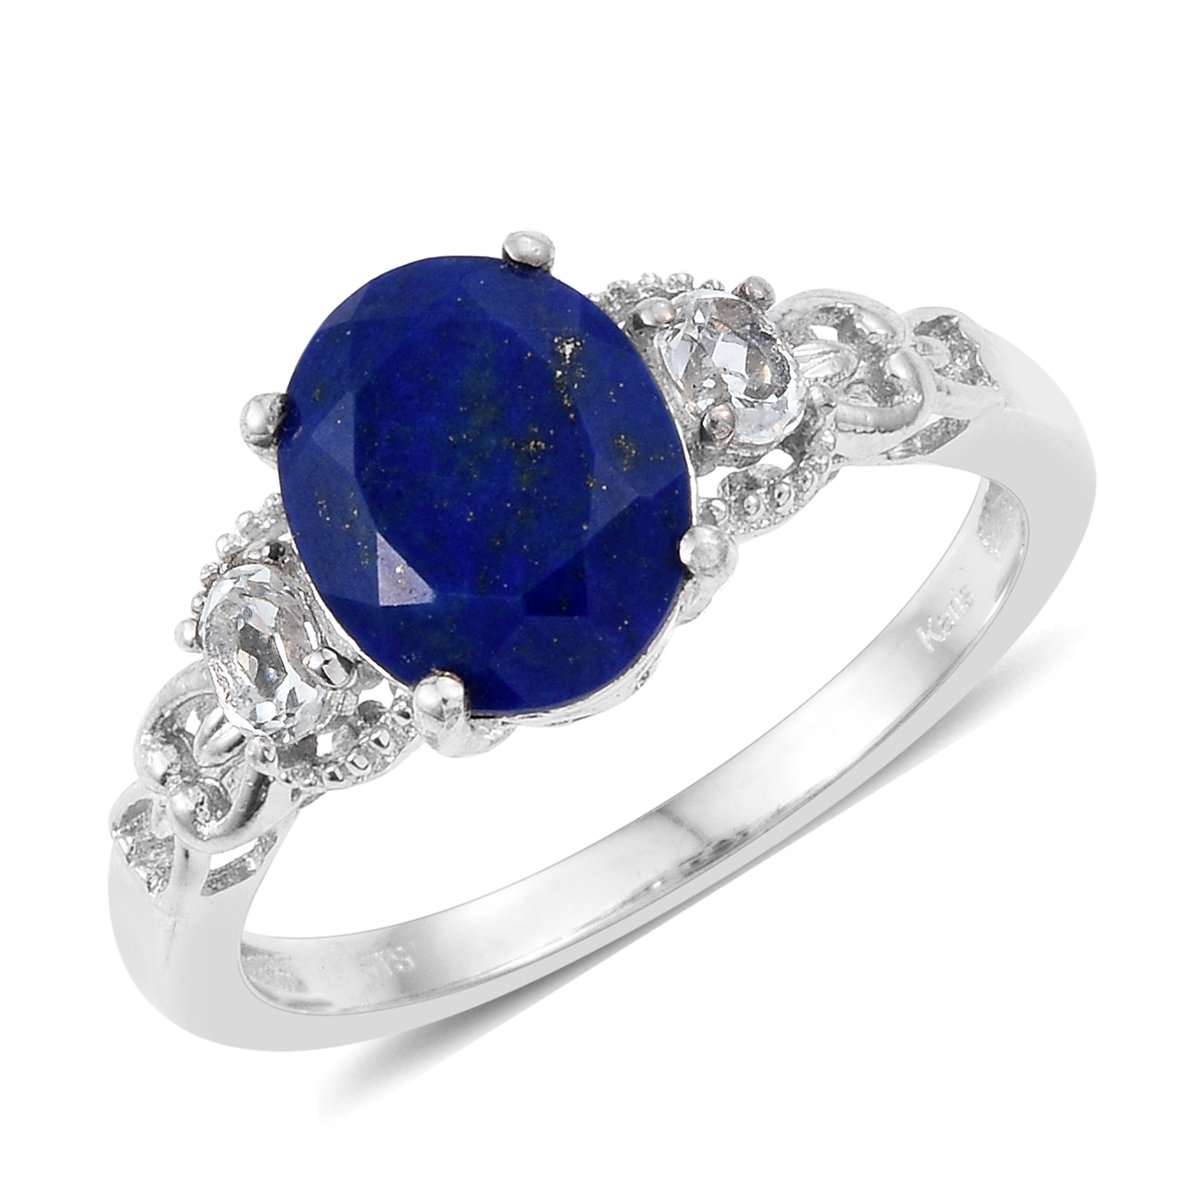 3.1 Cttw Oval Lapis Lazuli, White Topaz Gift Ring for Women Size 6